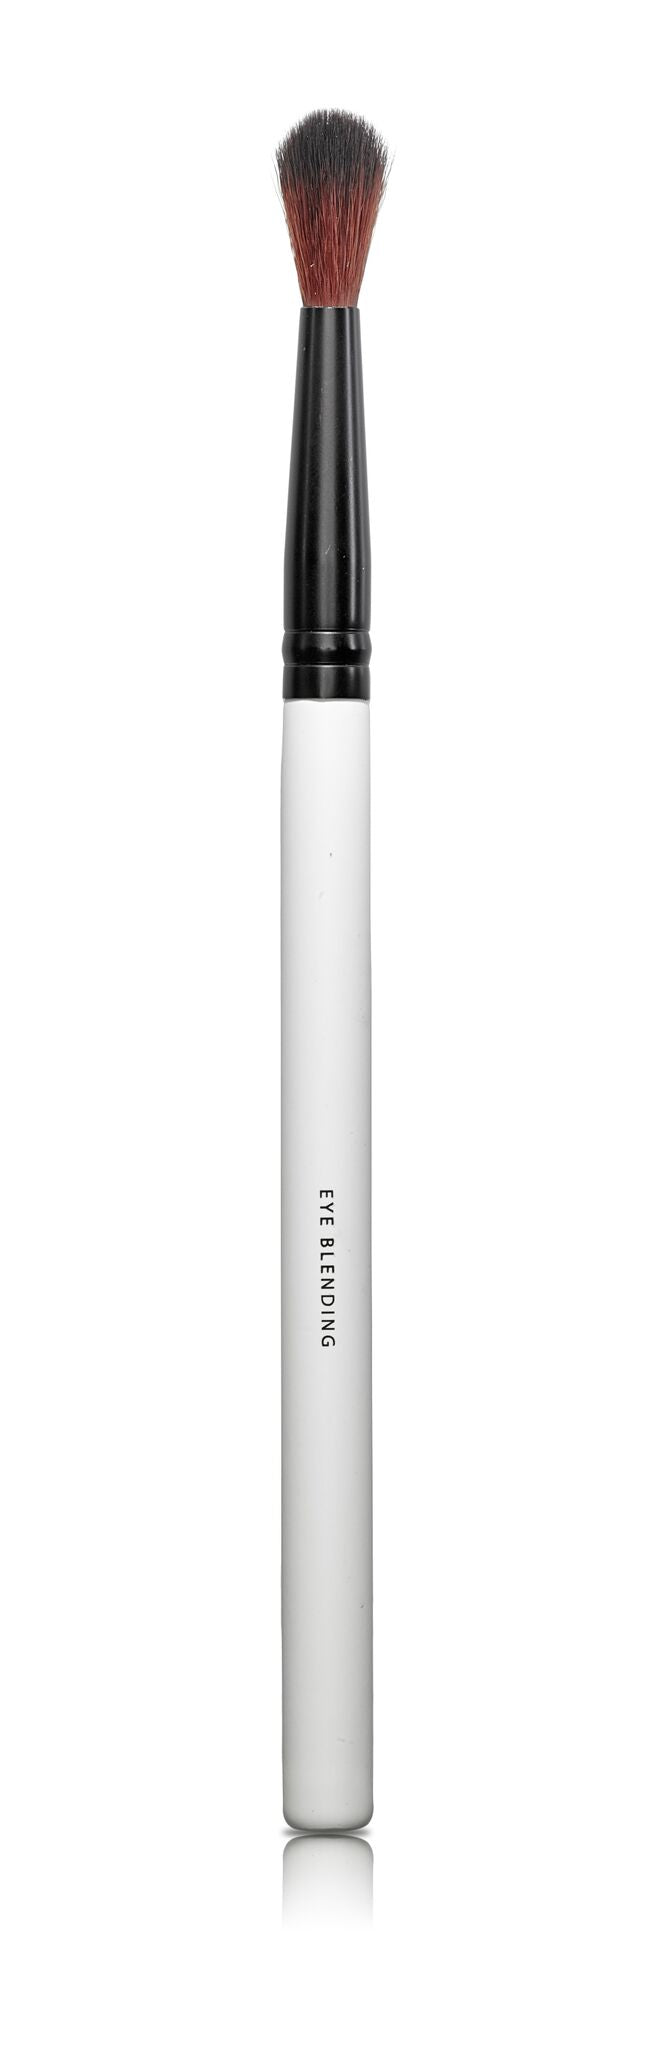 Lily Lolo Eye Shadow Blending Brush